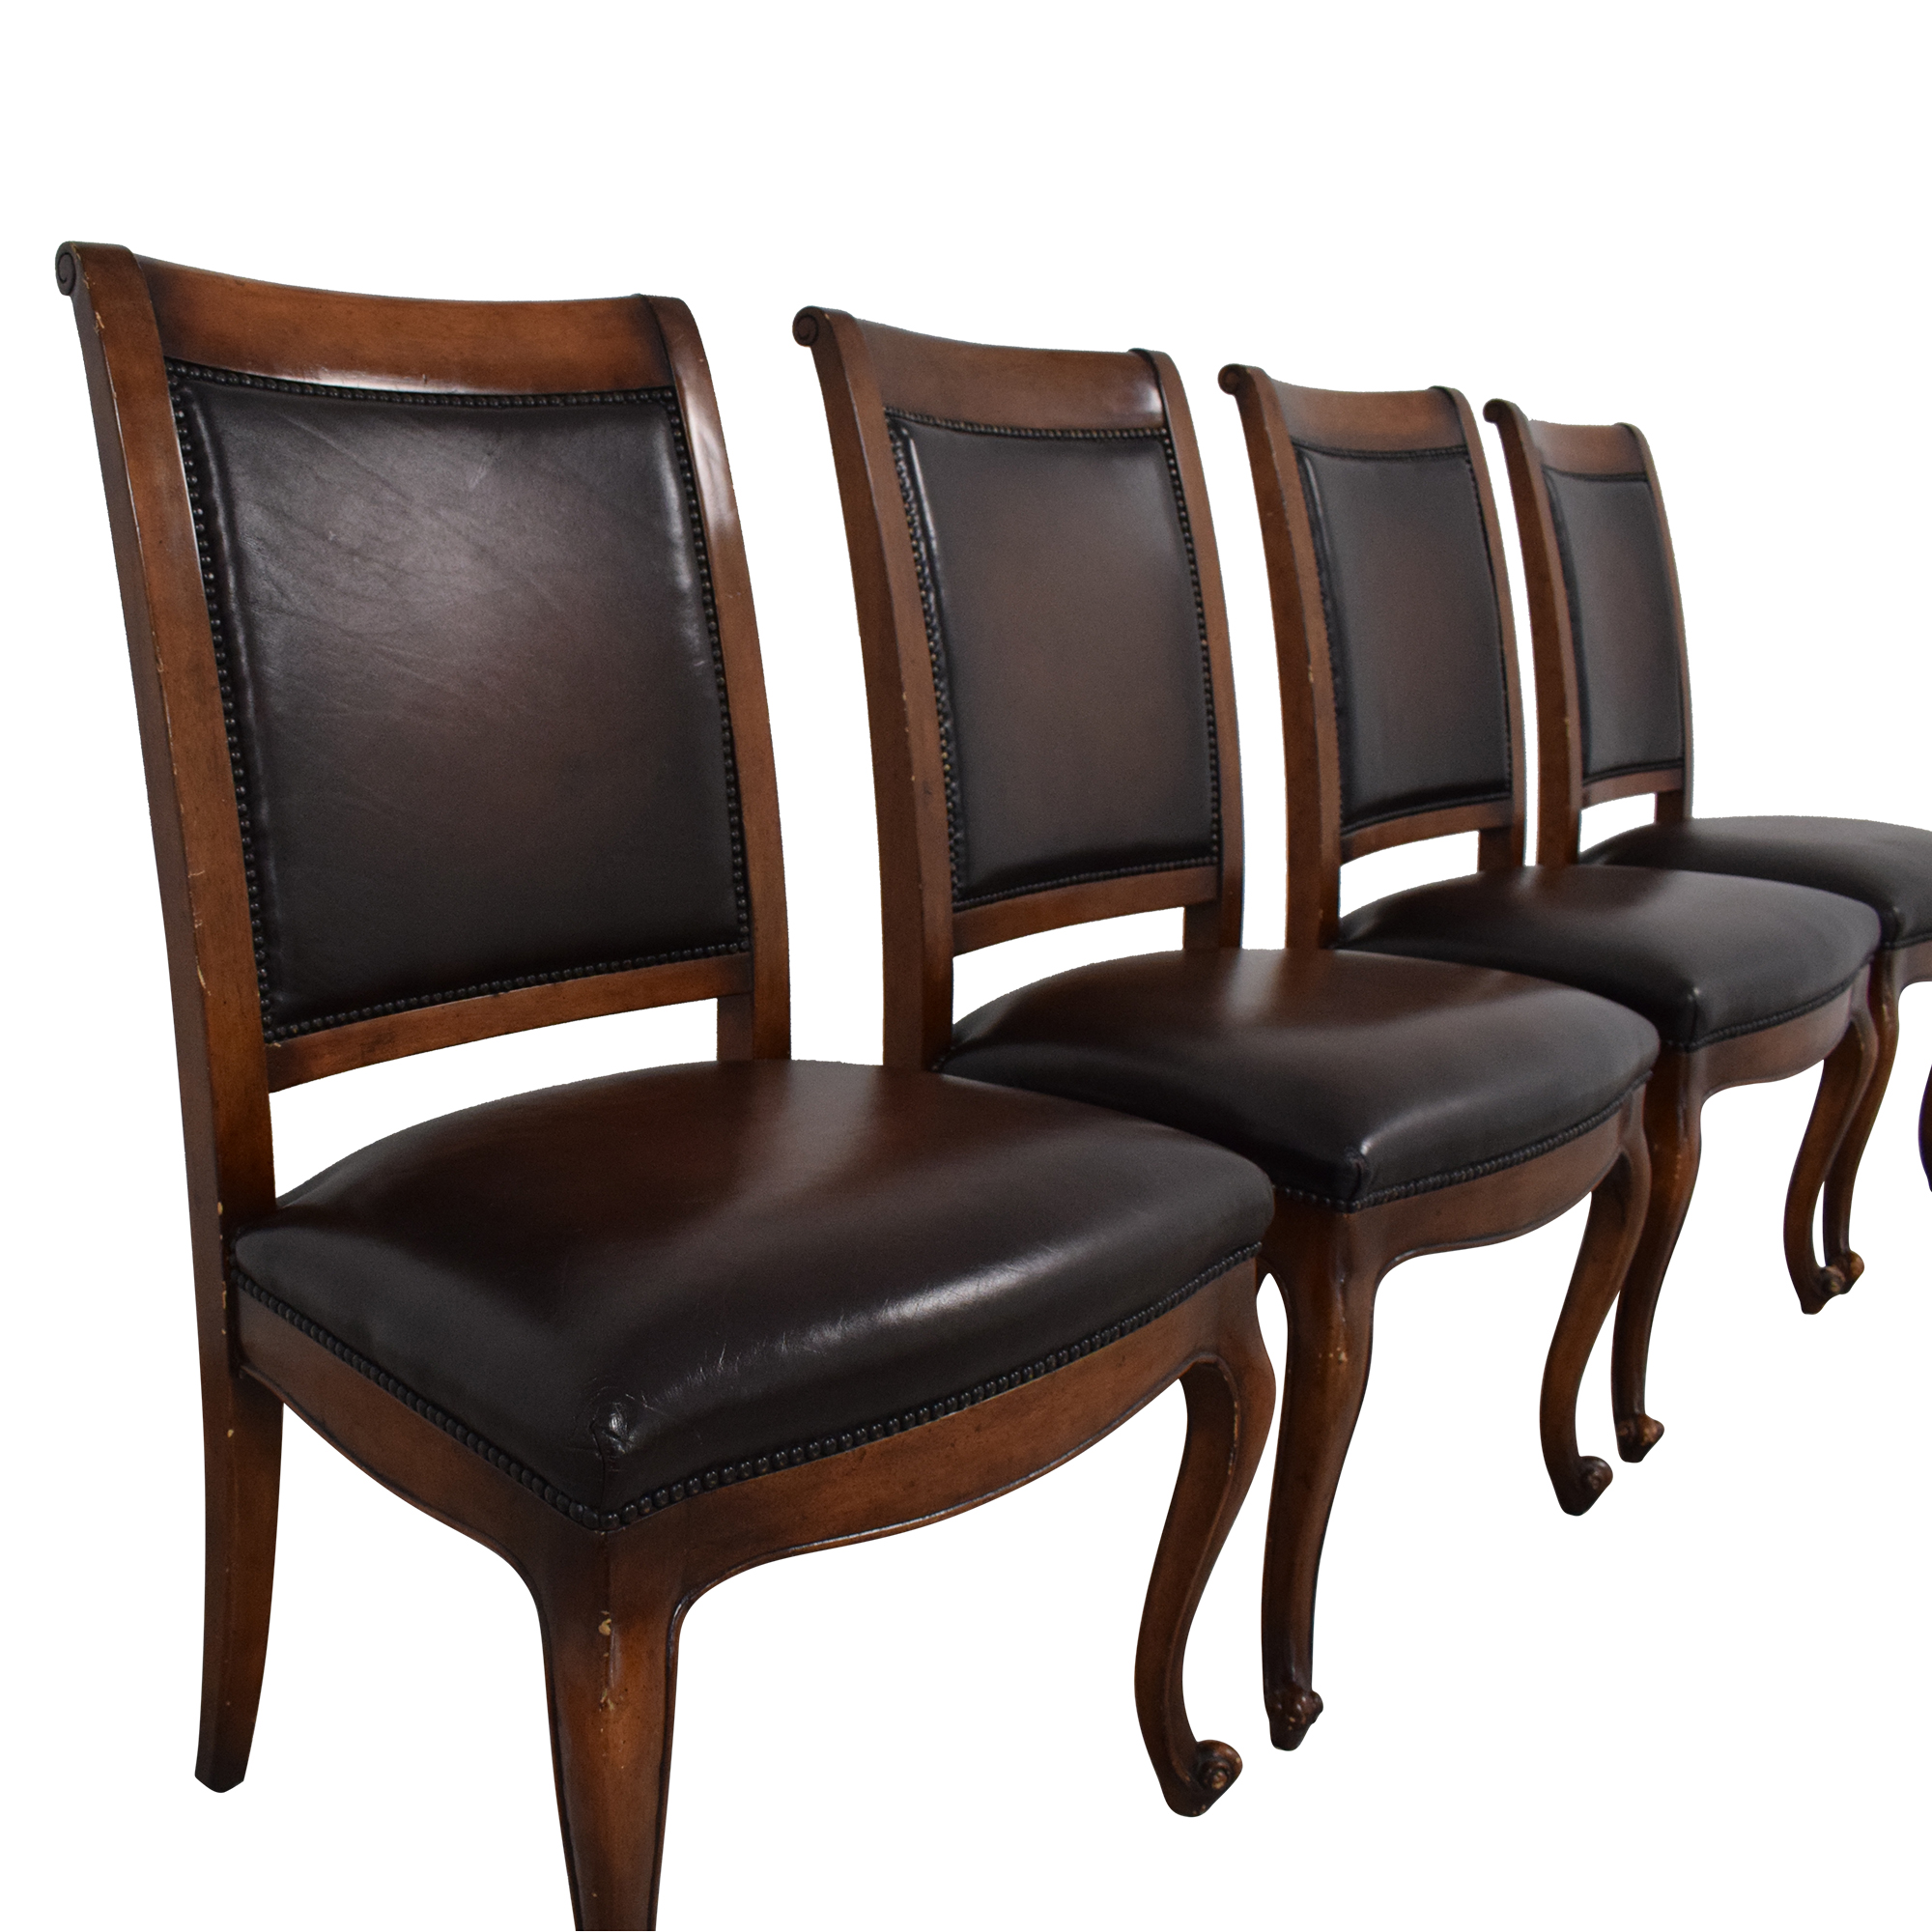 Theodore Alexander Theodore Alexander Dining Chairs used